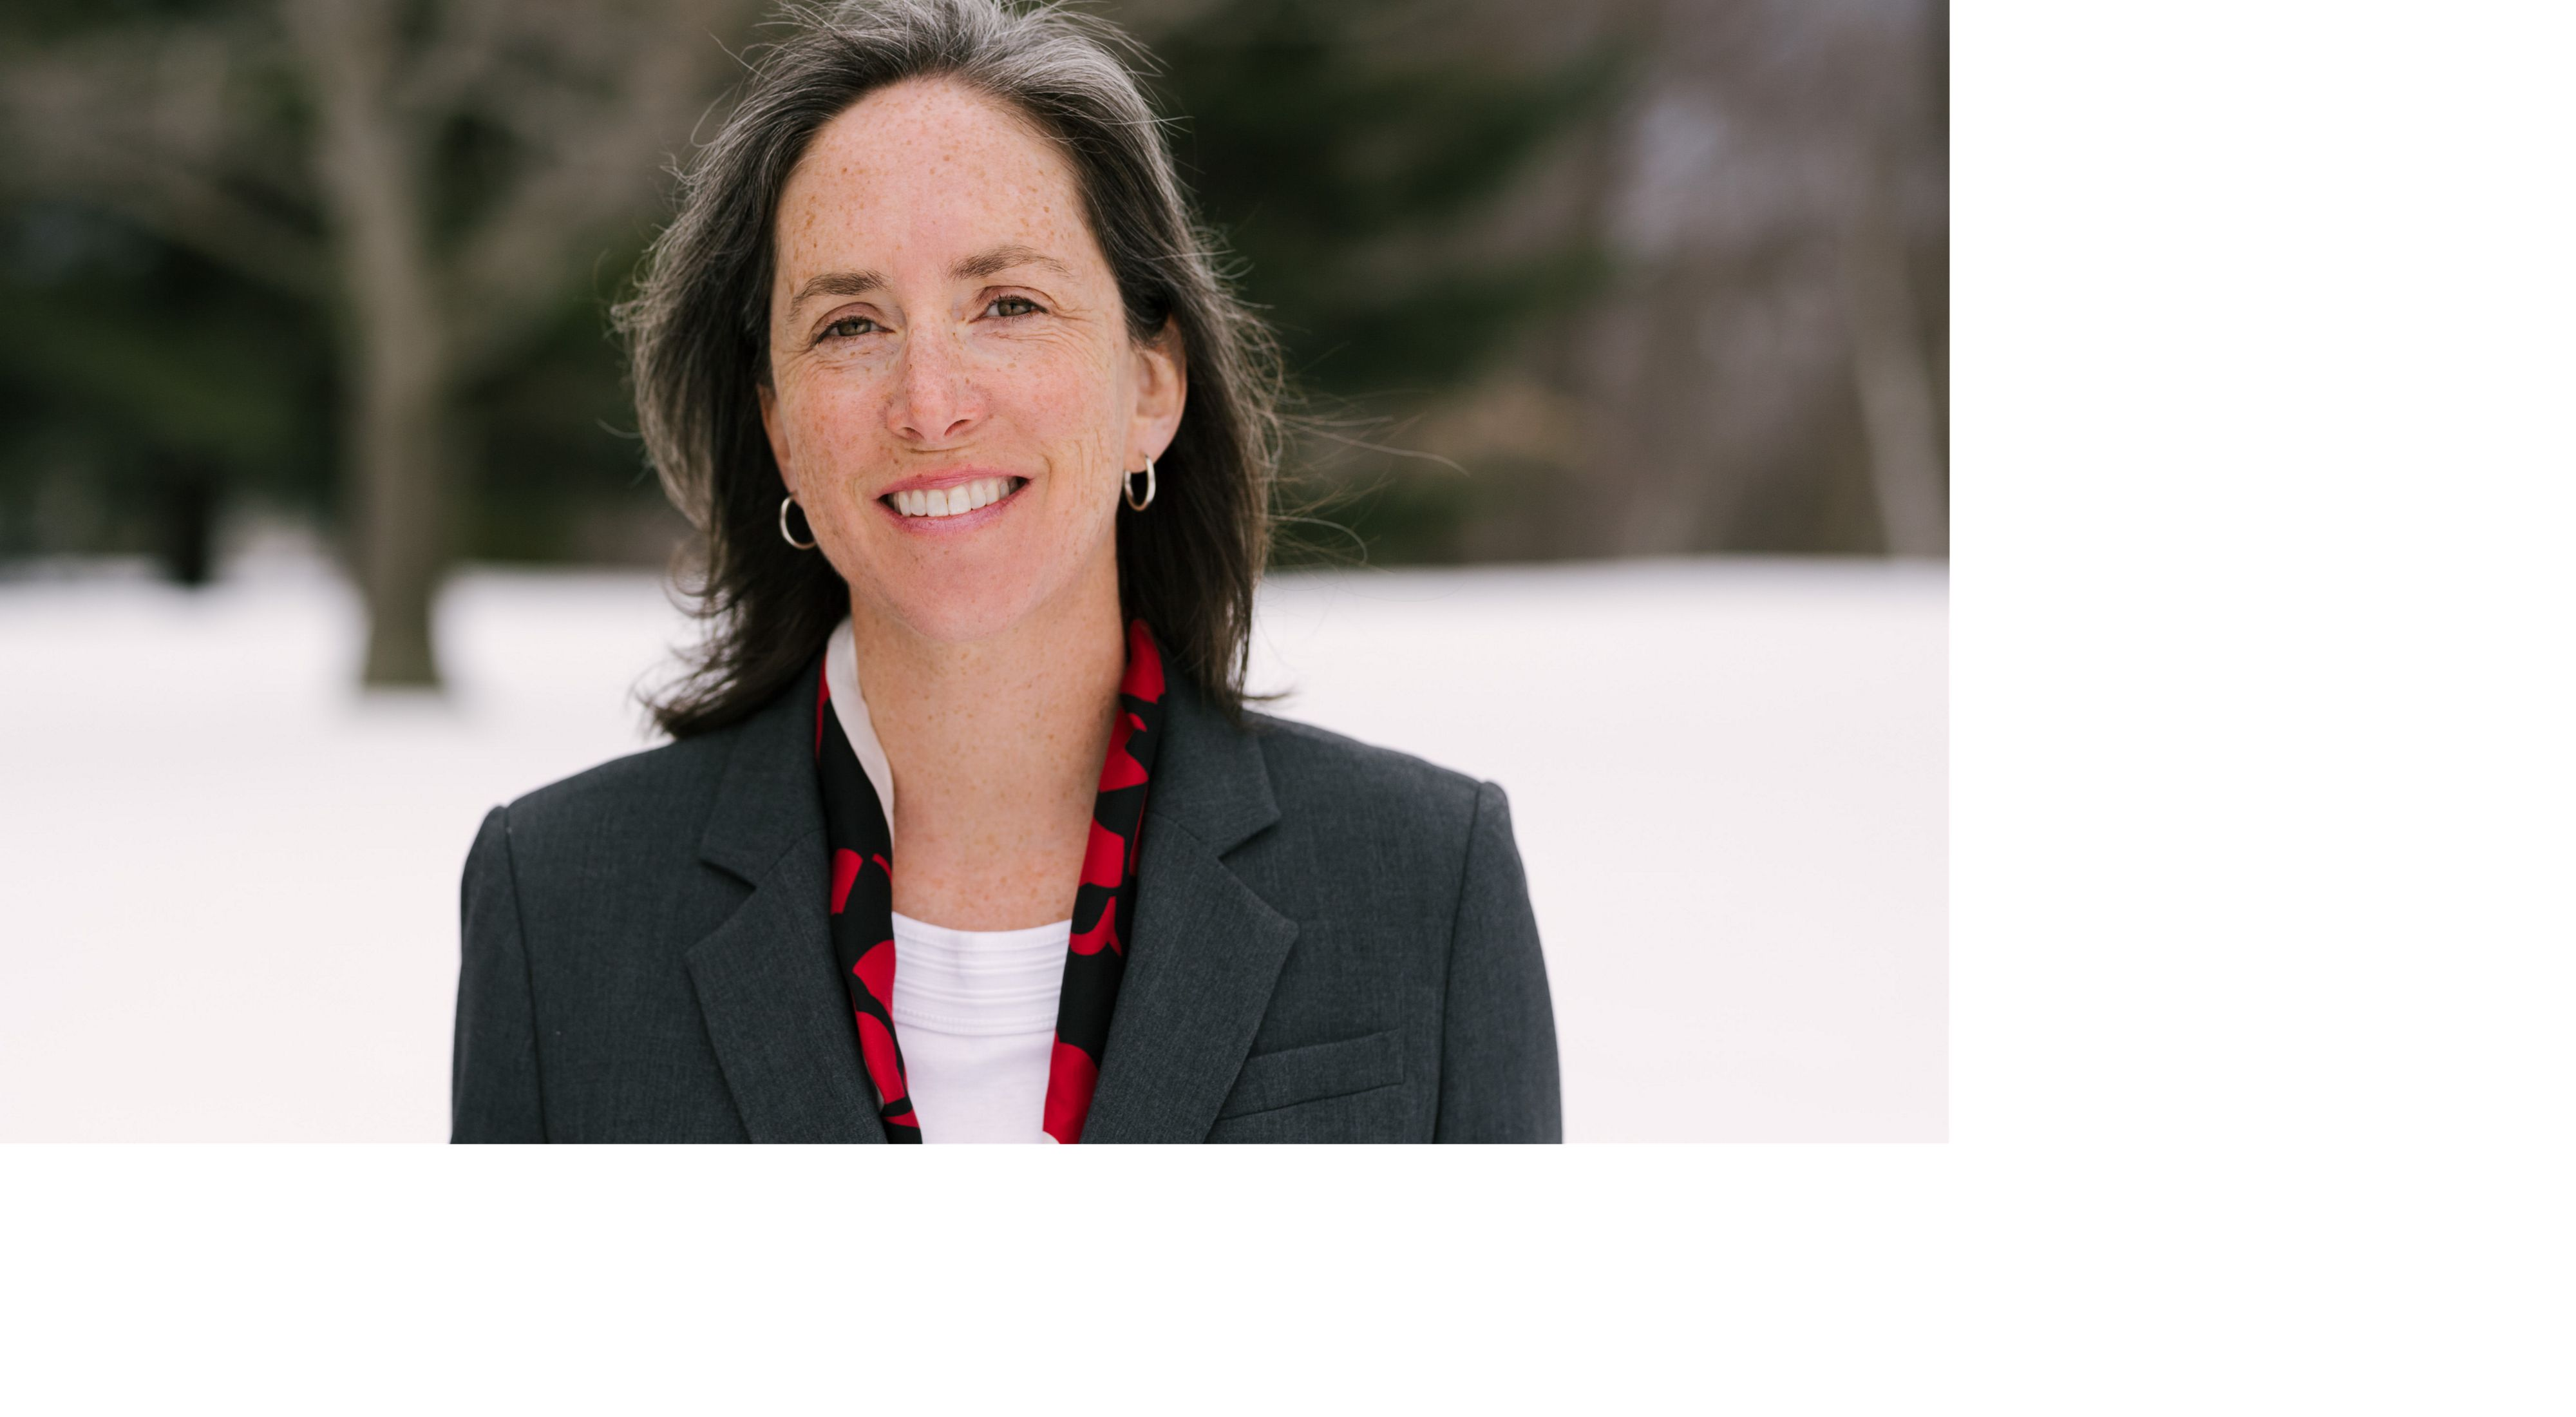 A headshot of Maine's Director of Science, Samantha Horn